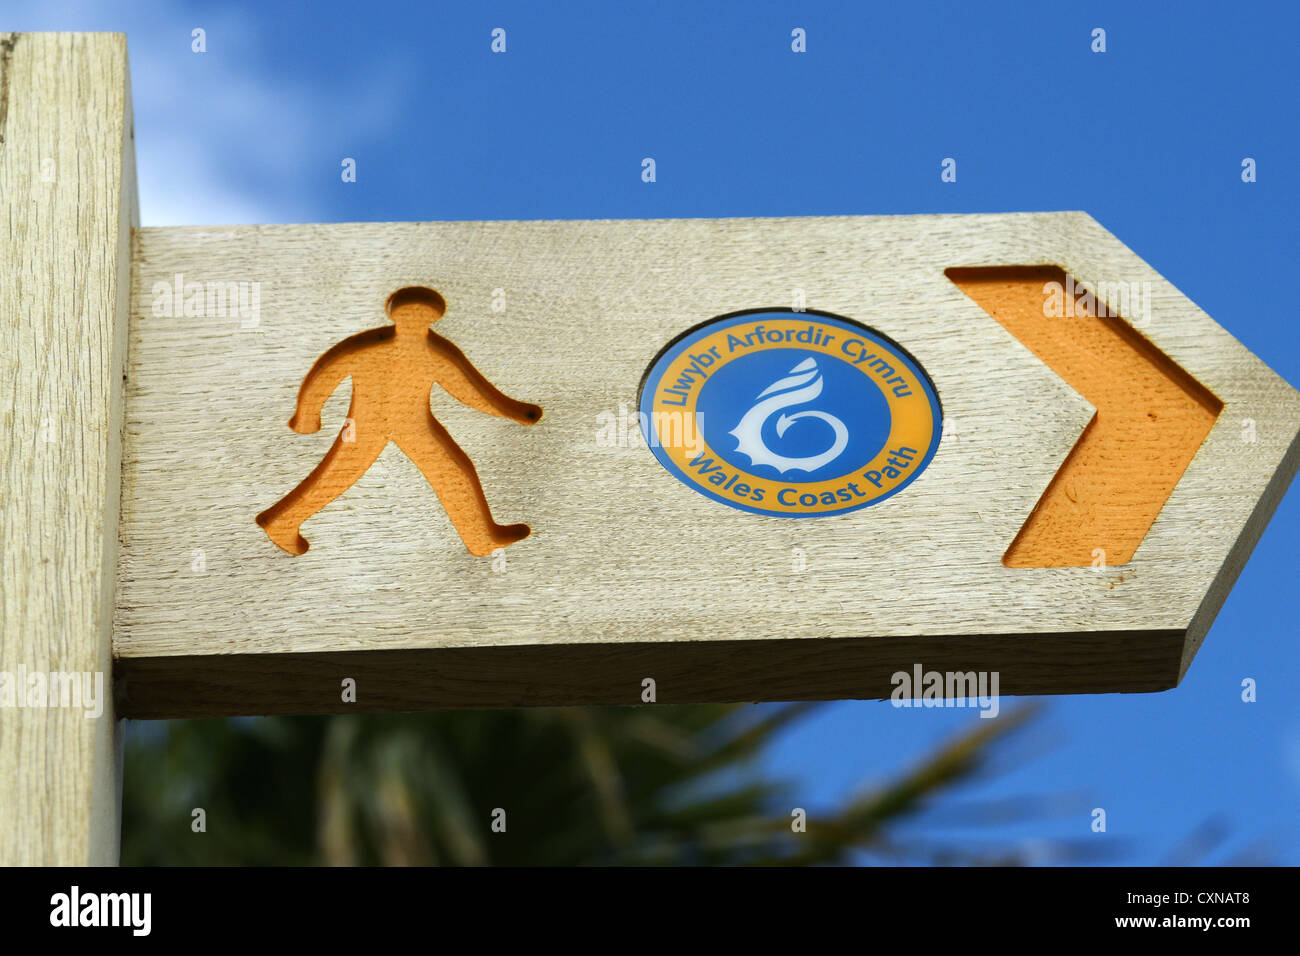 A signpost for the Wales Coast Path - Stock Image